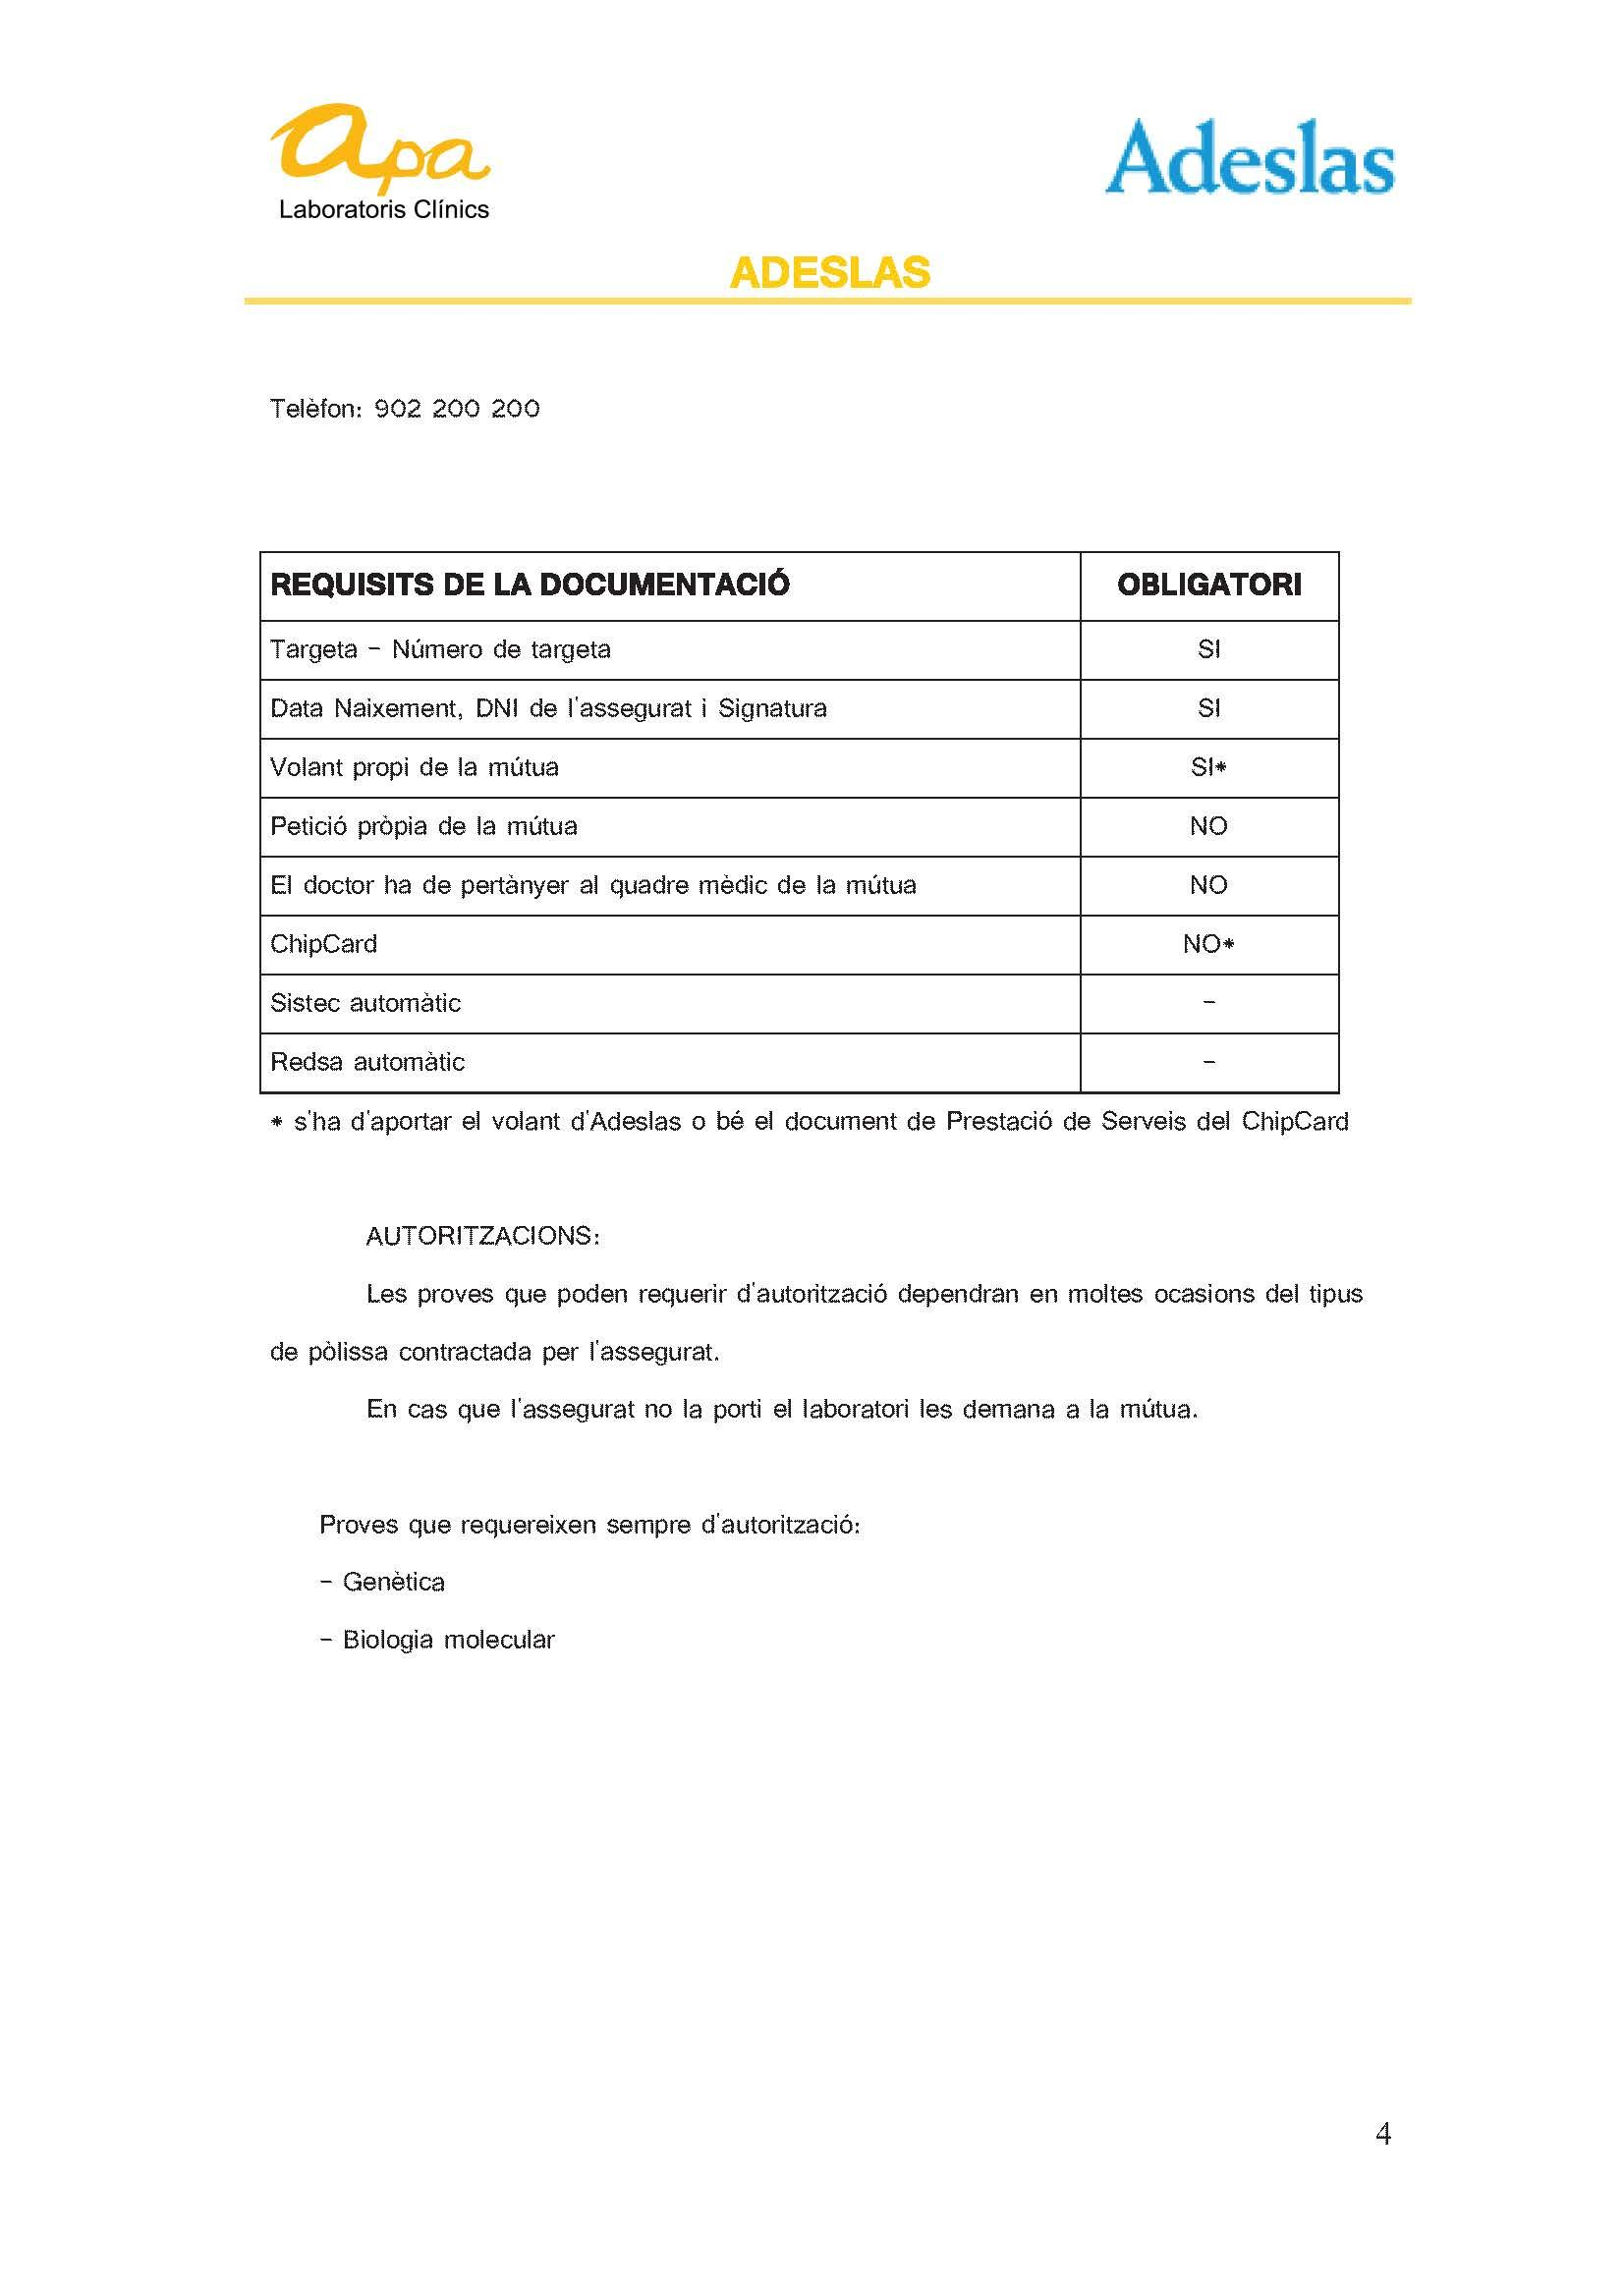 requisits-mutues-2016-adeslas